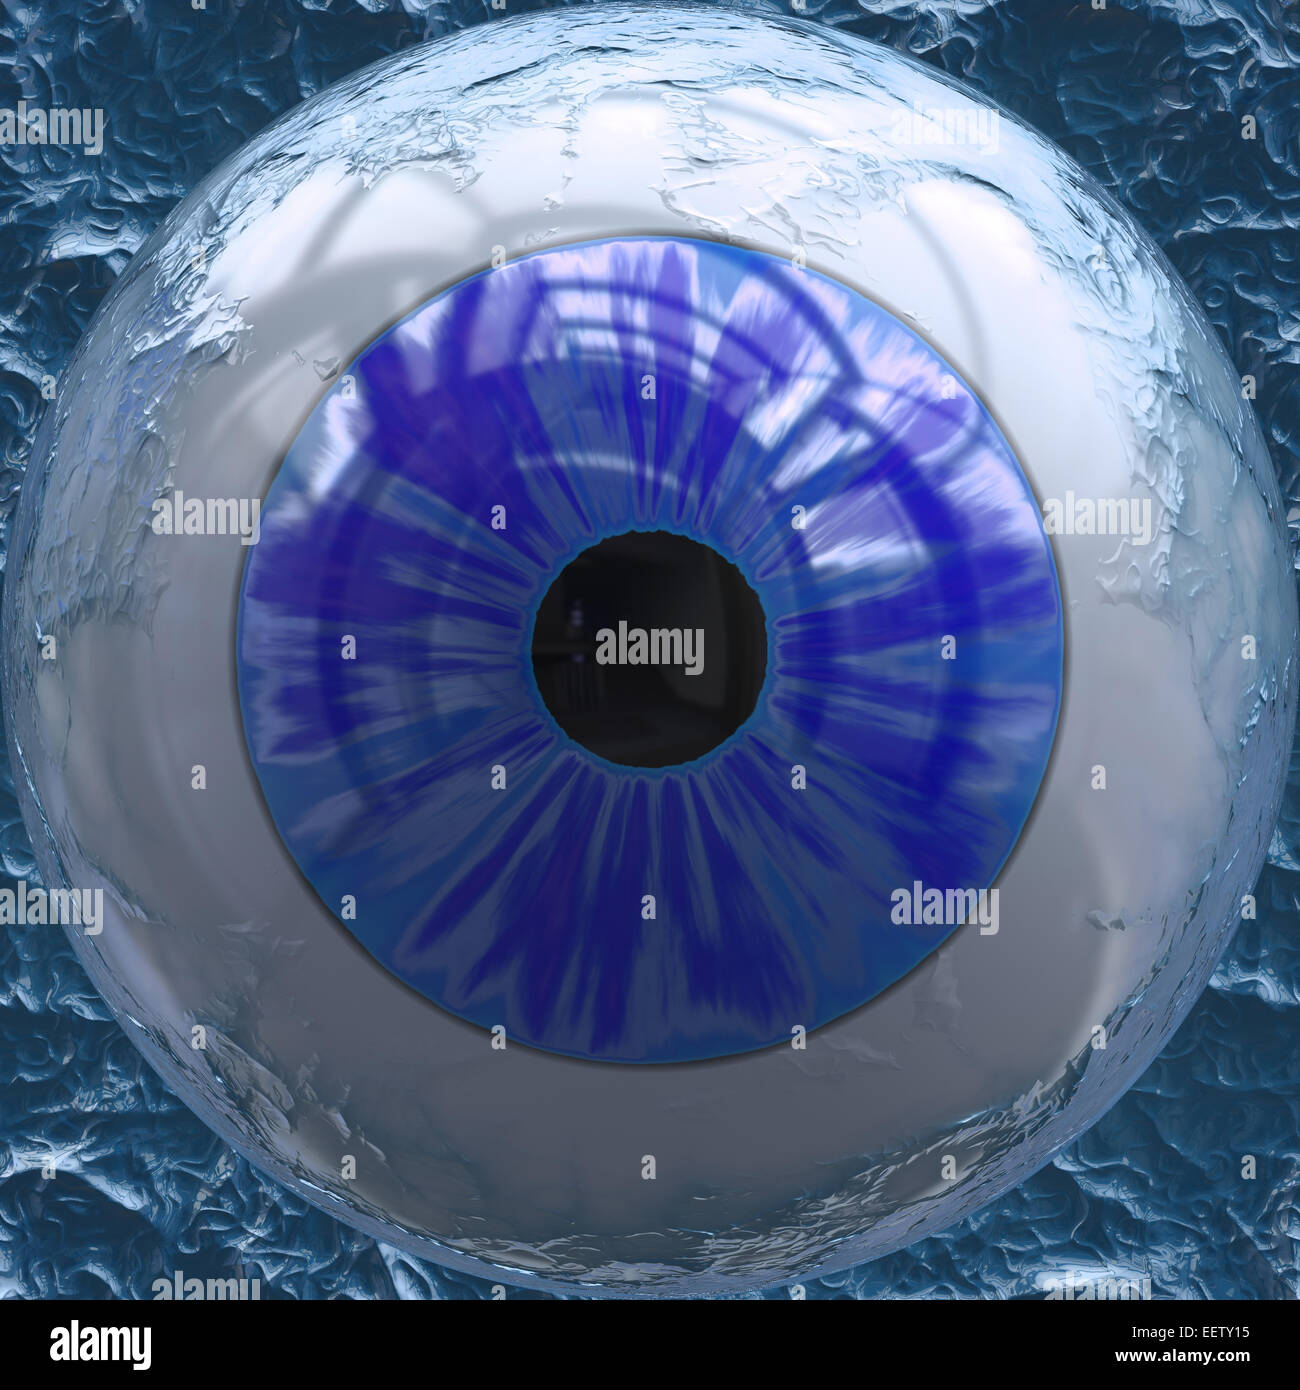 Closeup view of blue colored eyeball - Stock Image